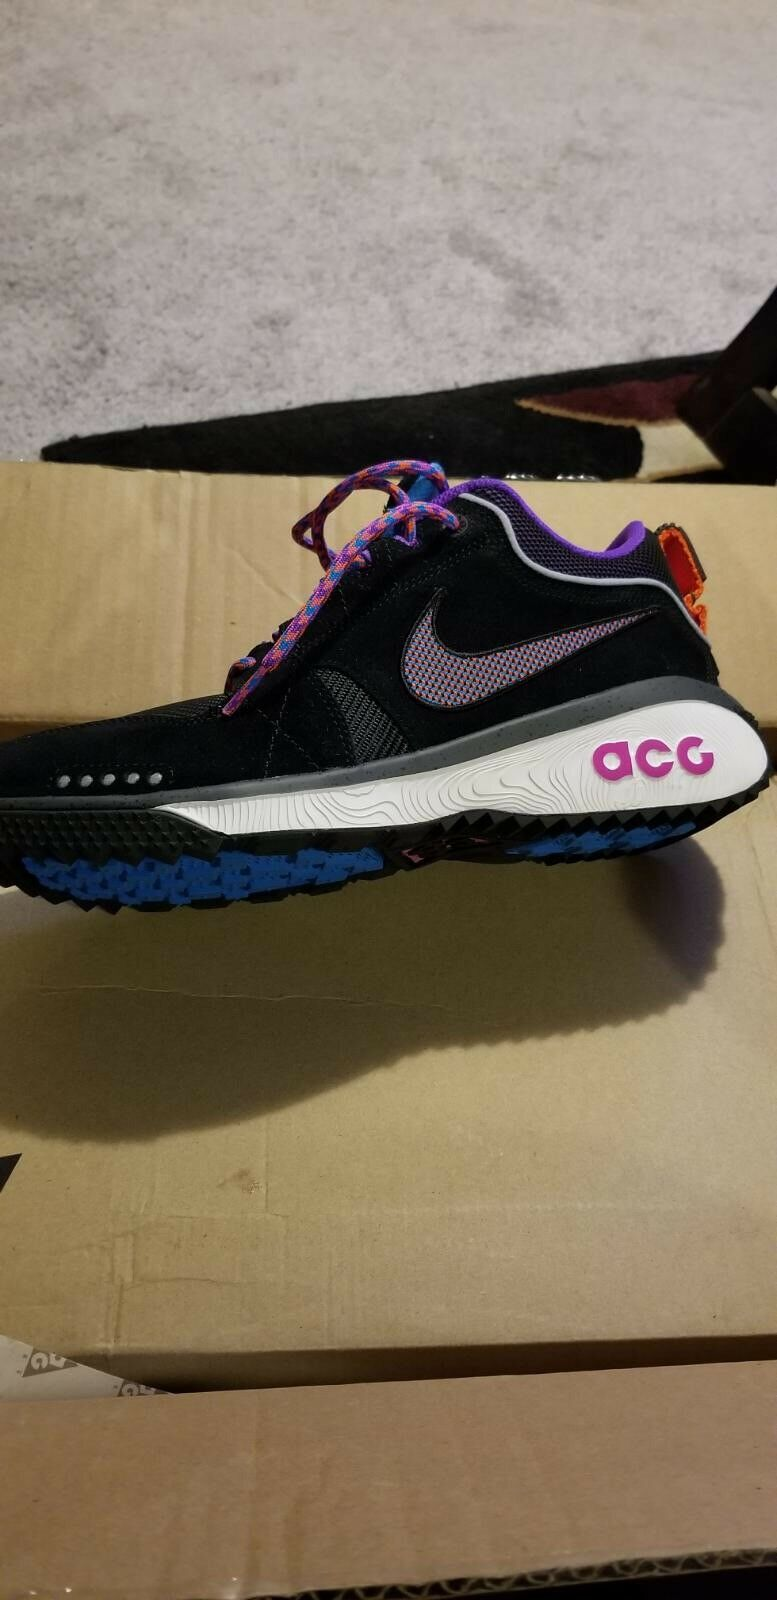 Nike ACG Dog Mountain Black Equator blueee Dark Grey AQ0916-001 Size 12